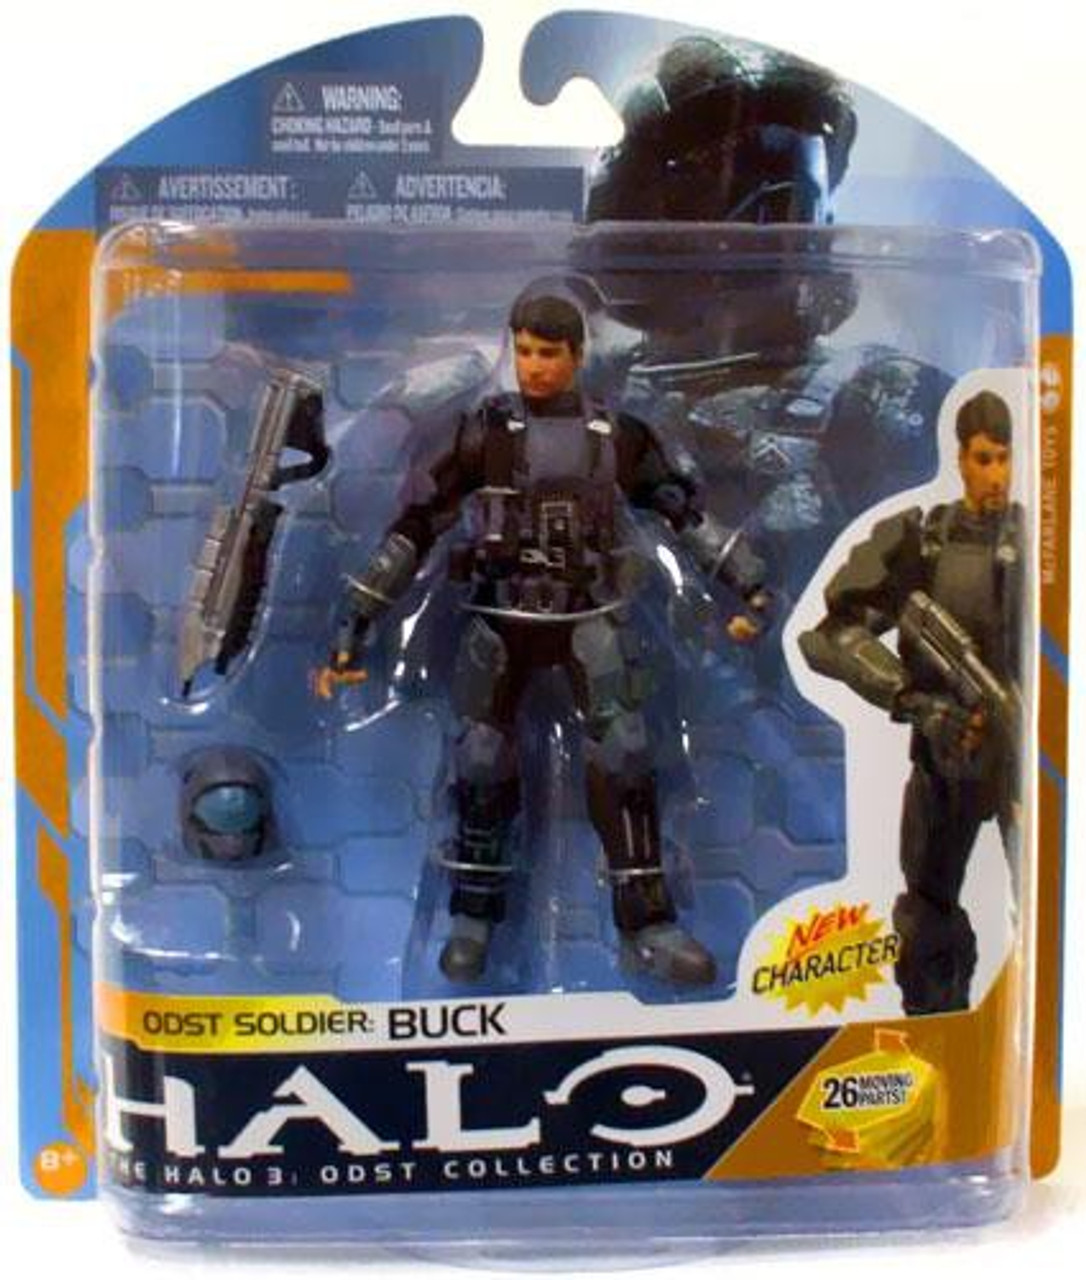 McFarlane Toys Halo 3 Series 8 ODST Soldier: Buck Action Figure